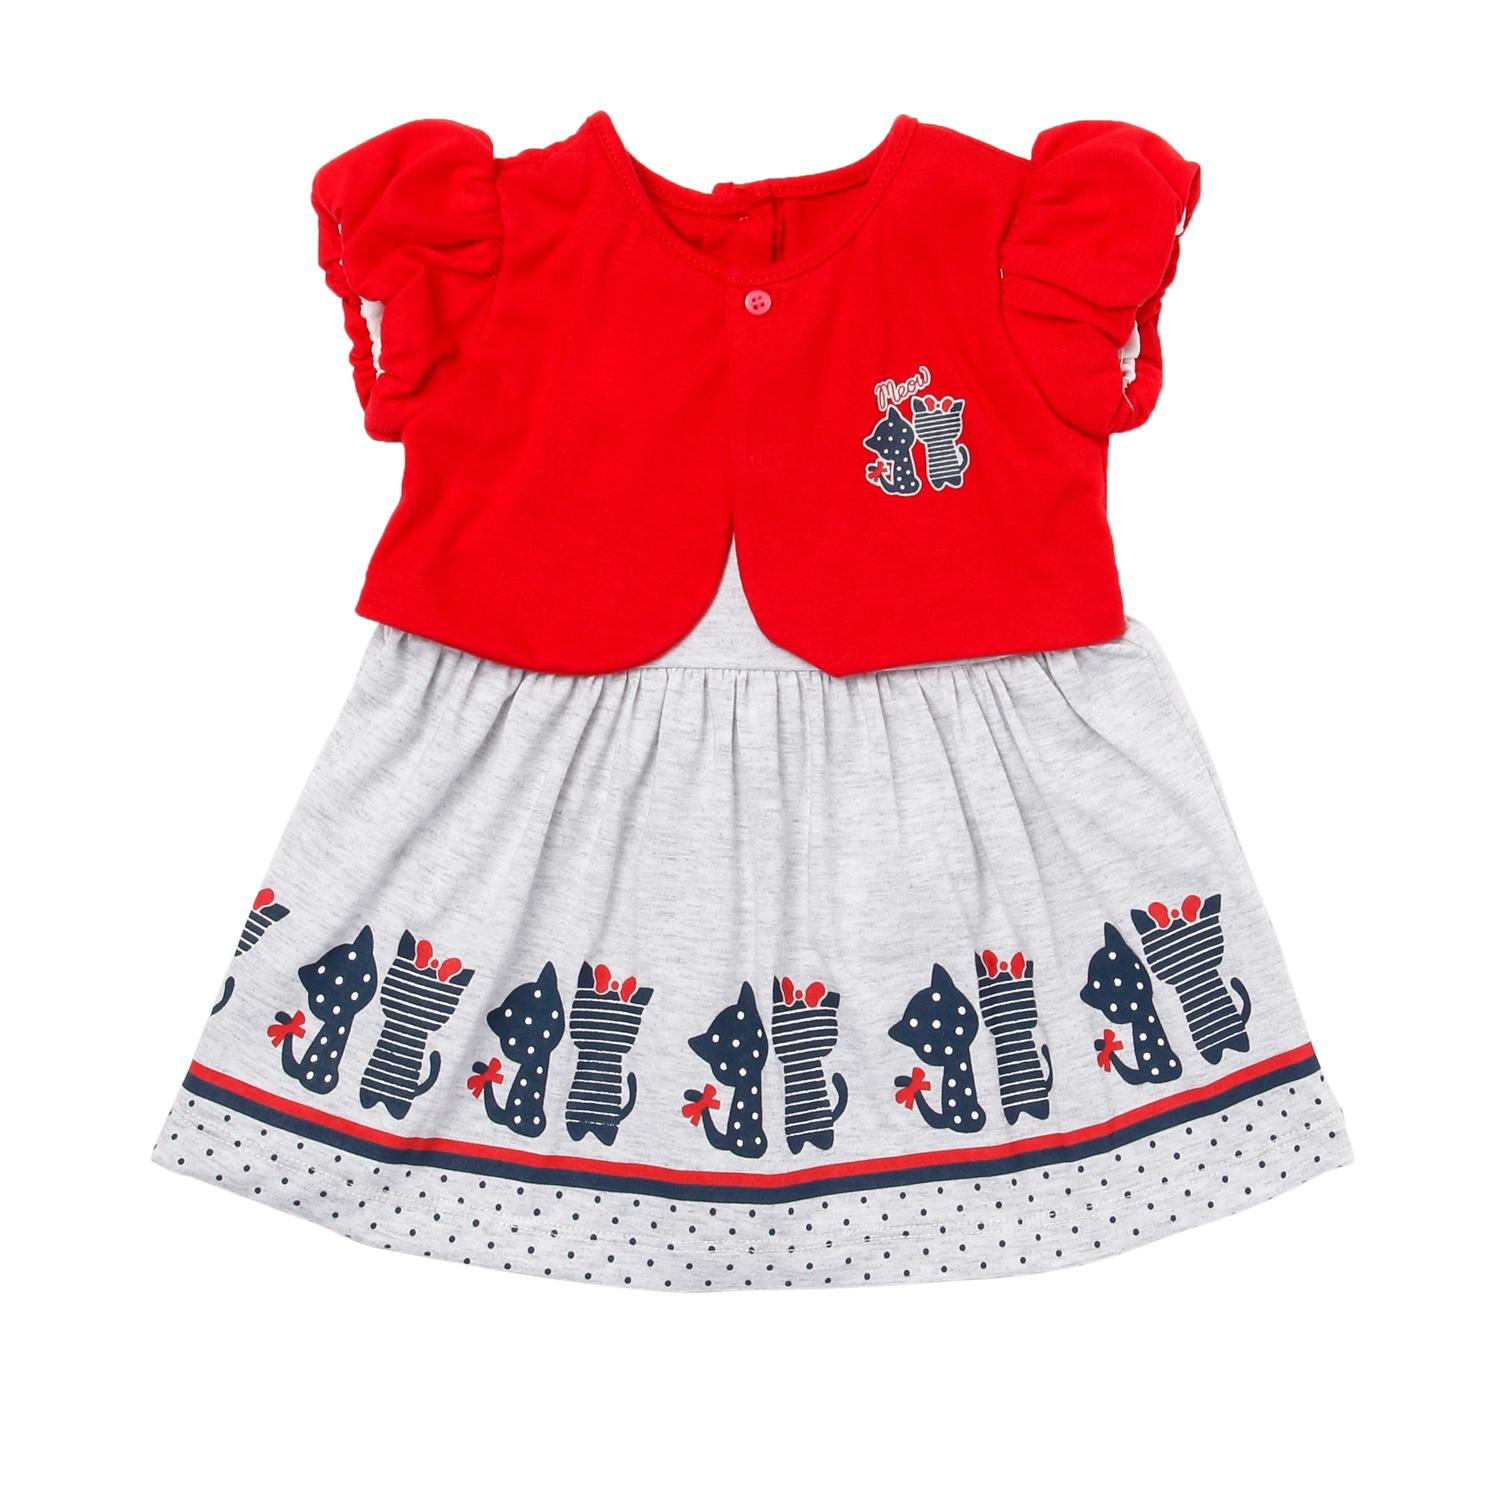 ed8242a1a31e Girls Dresses for sale - Baby Dresses for Girls online brands ...